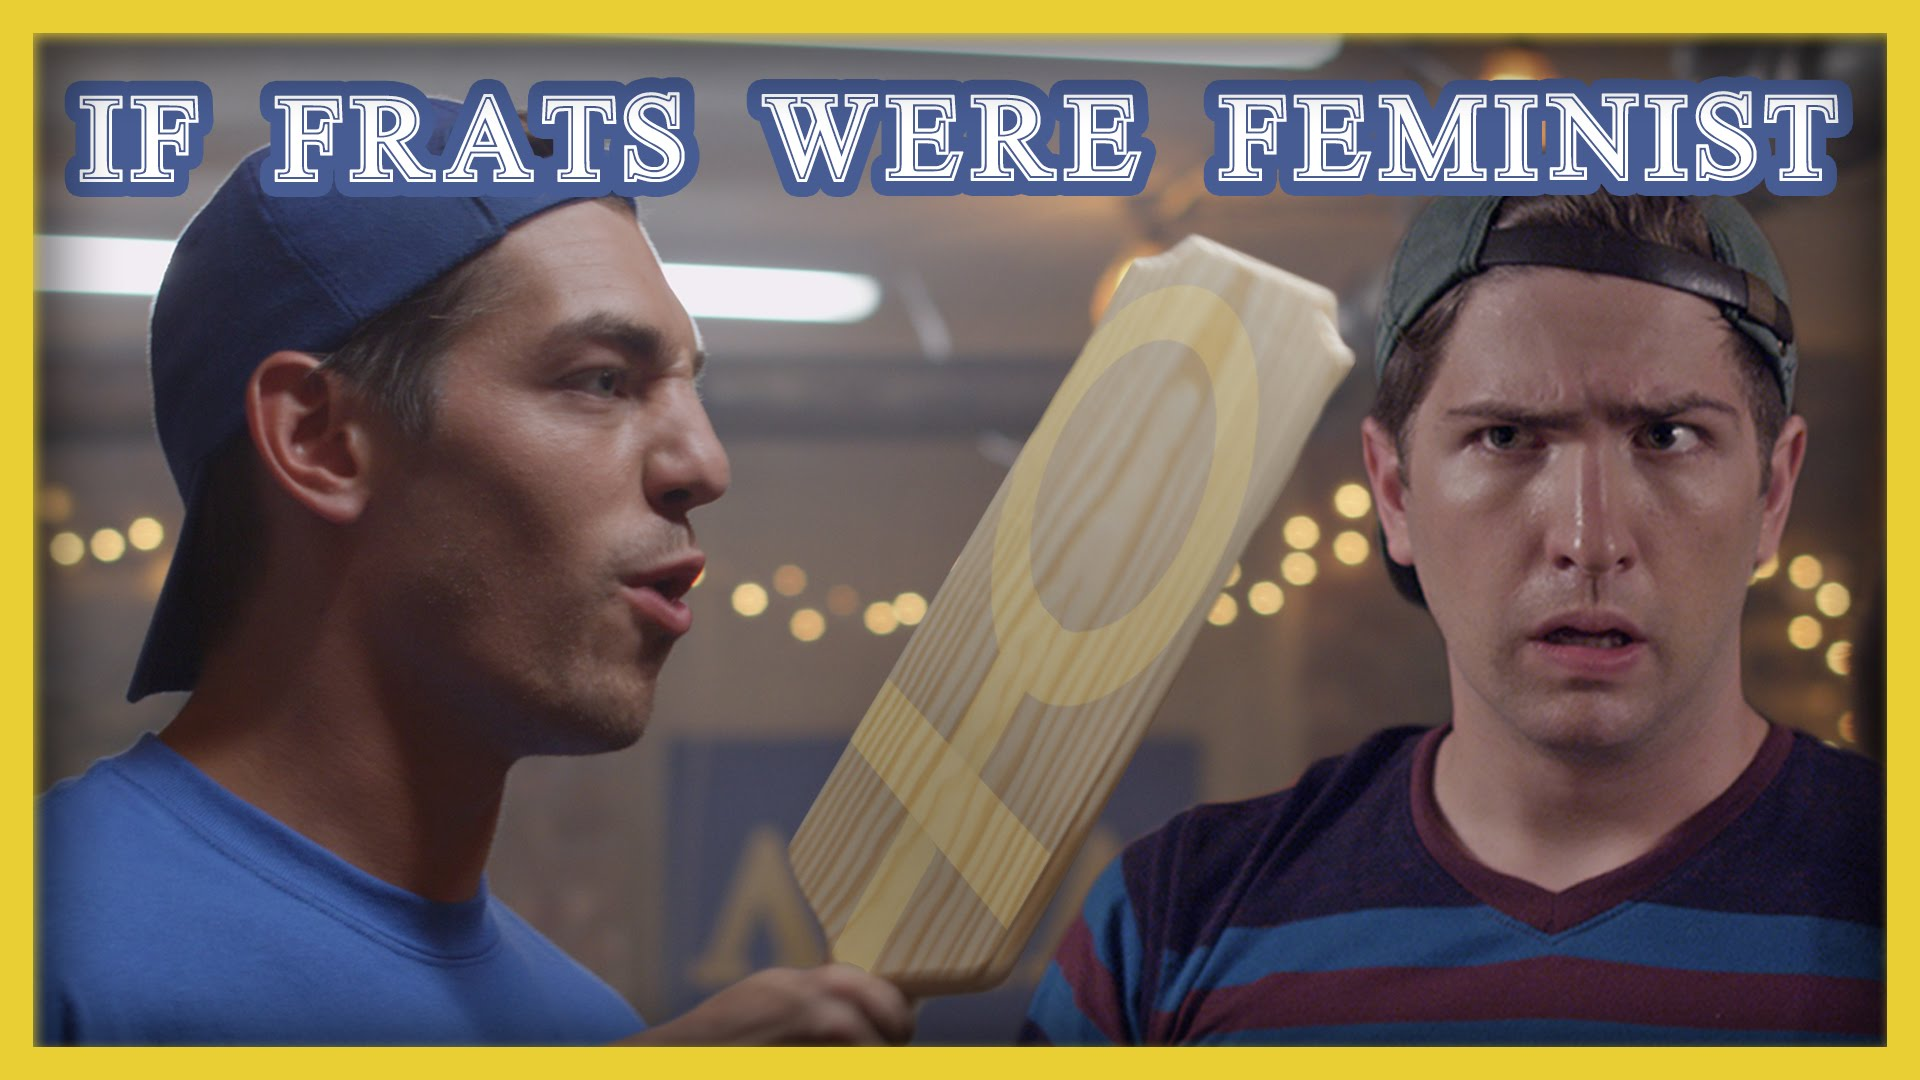 """Two people , male presenting, posed as members of a fraternity. The person on the right holds what looks to be a paddle with the symbol of the female sex highlighted in yellow. Bold text """"If Frats Were Feminist"""" spans the top  of the image."""